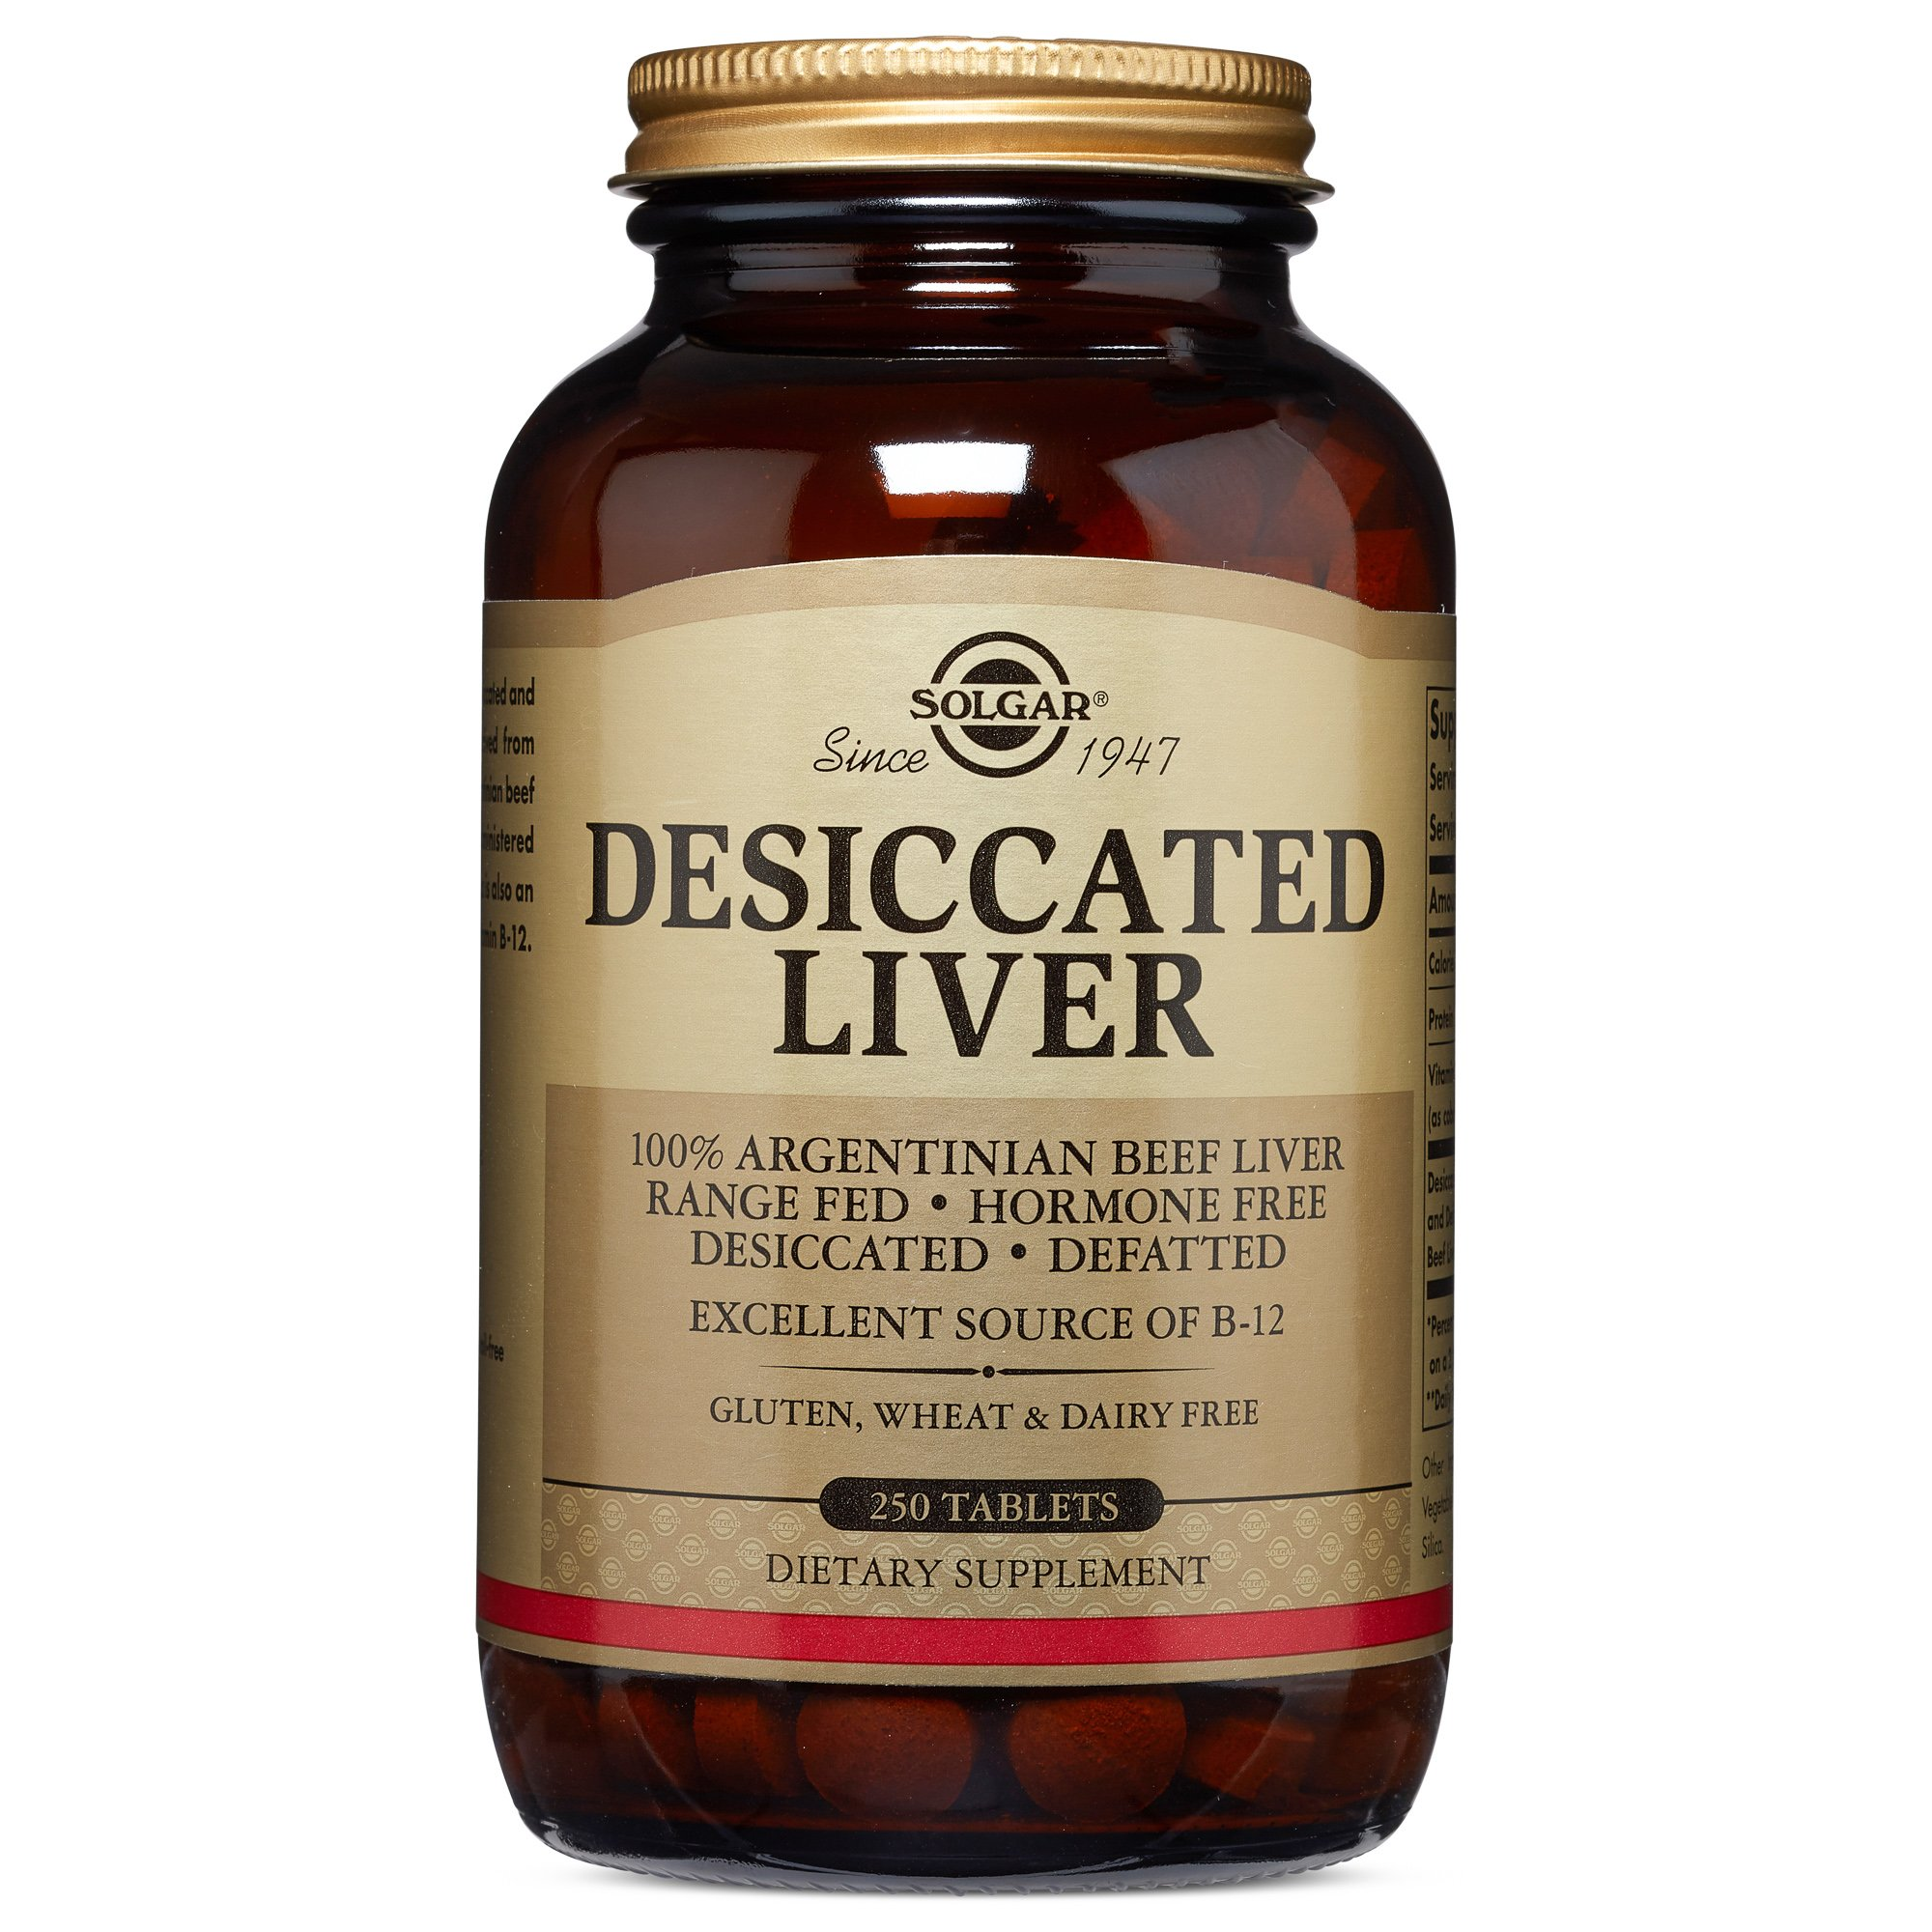 Solgar - Desiccated Liver, 250 Tablets by Solgar